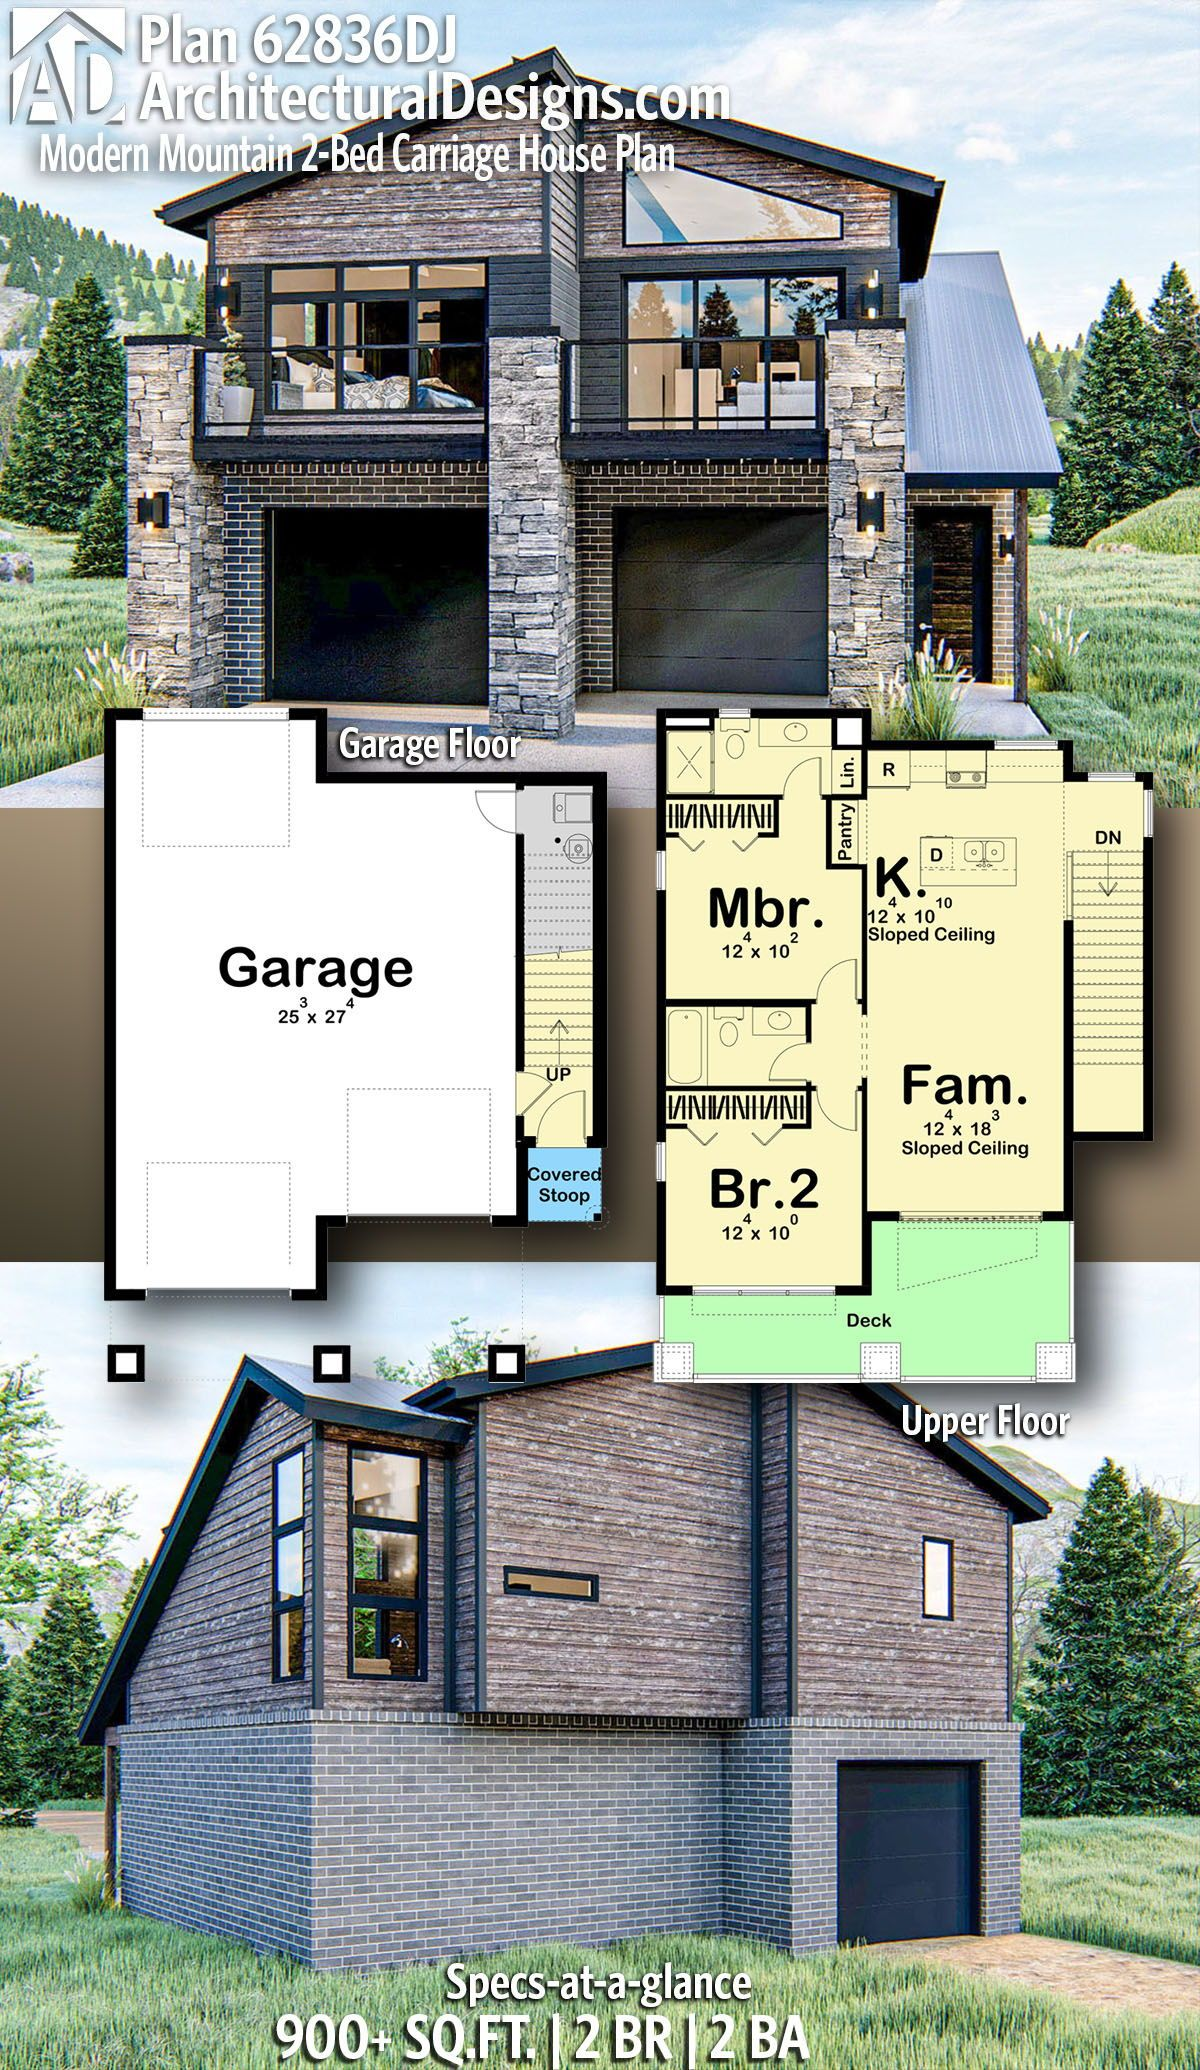 42 Garage And Carriage House Plans Ideas Carriage House Plans Garage Plans House Plans